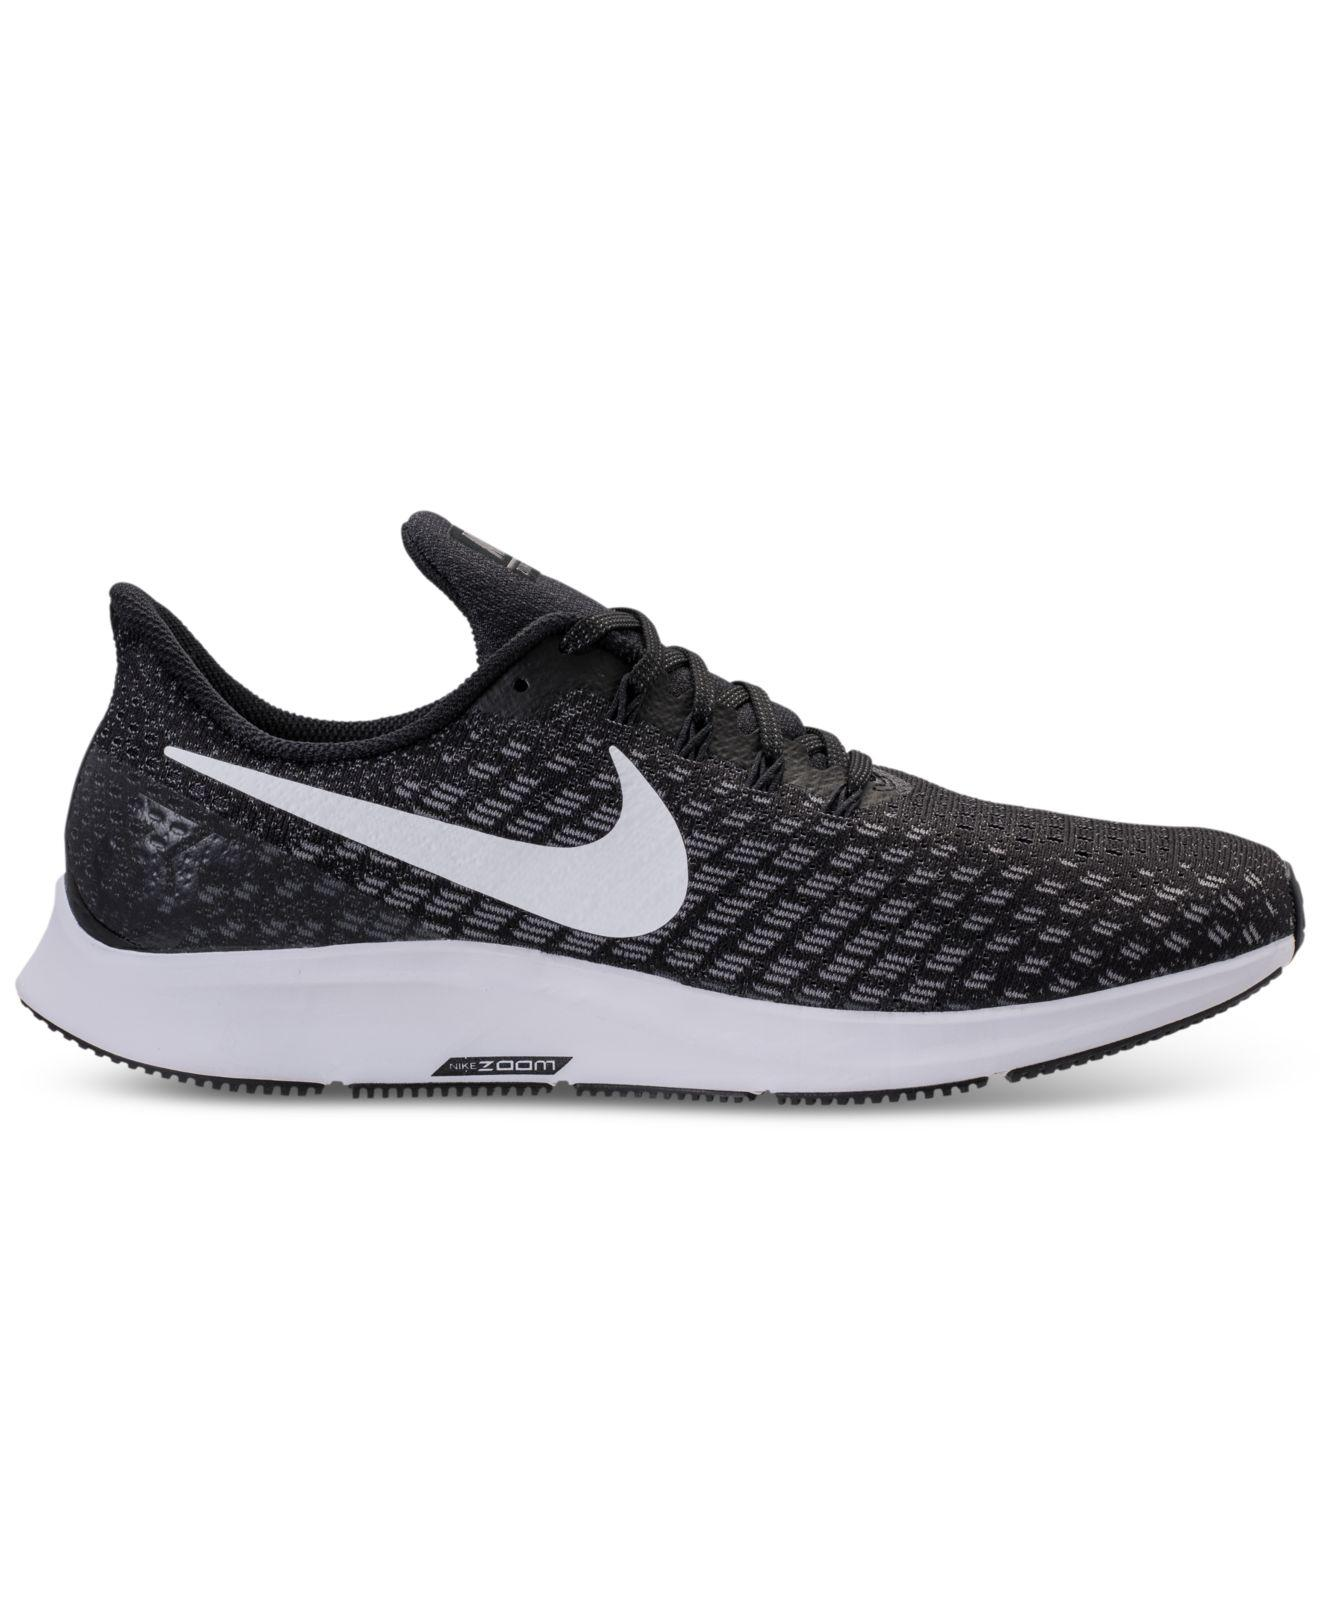 a0995703d784 Lyst - Nike Air Zoom Pegasus 35 Running Sneakers From Finish Line in Black  for Men